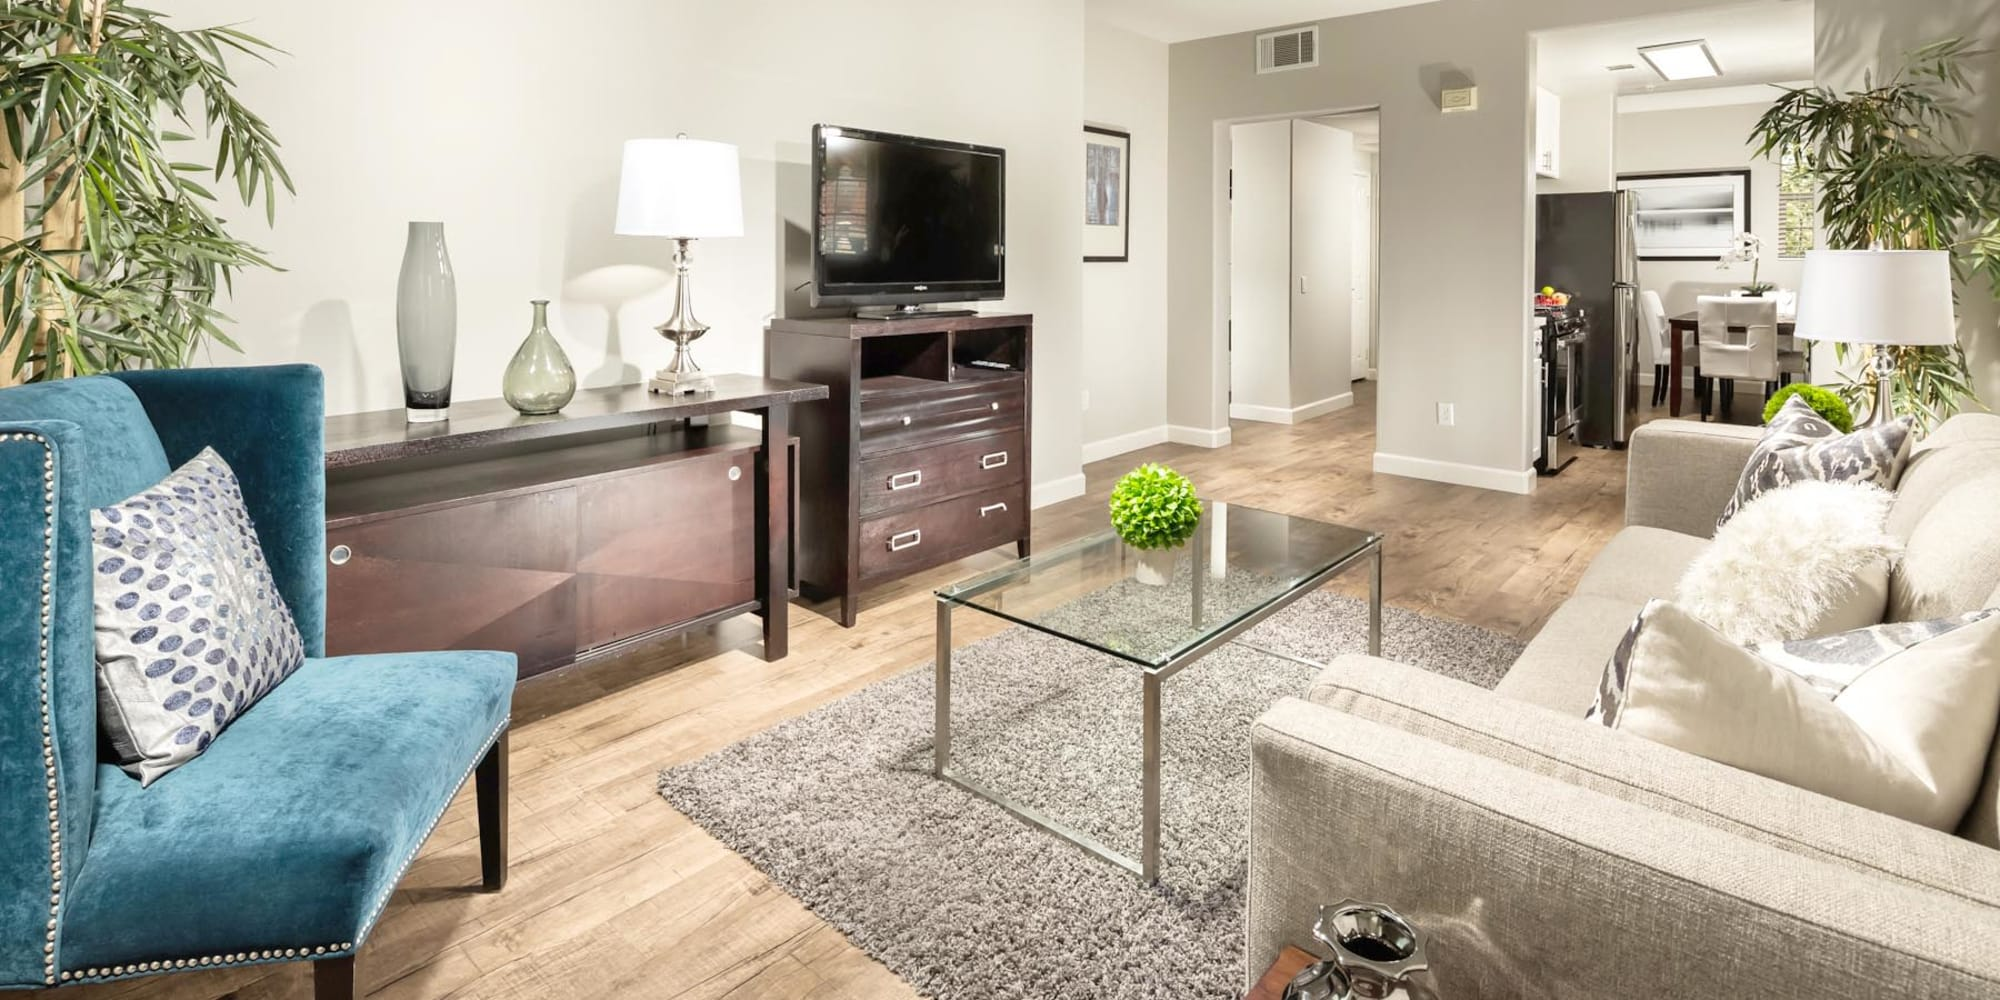 Classically furnished model home's living area at Mission Hills in Camarillo, California